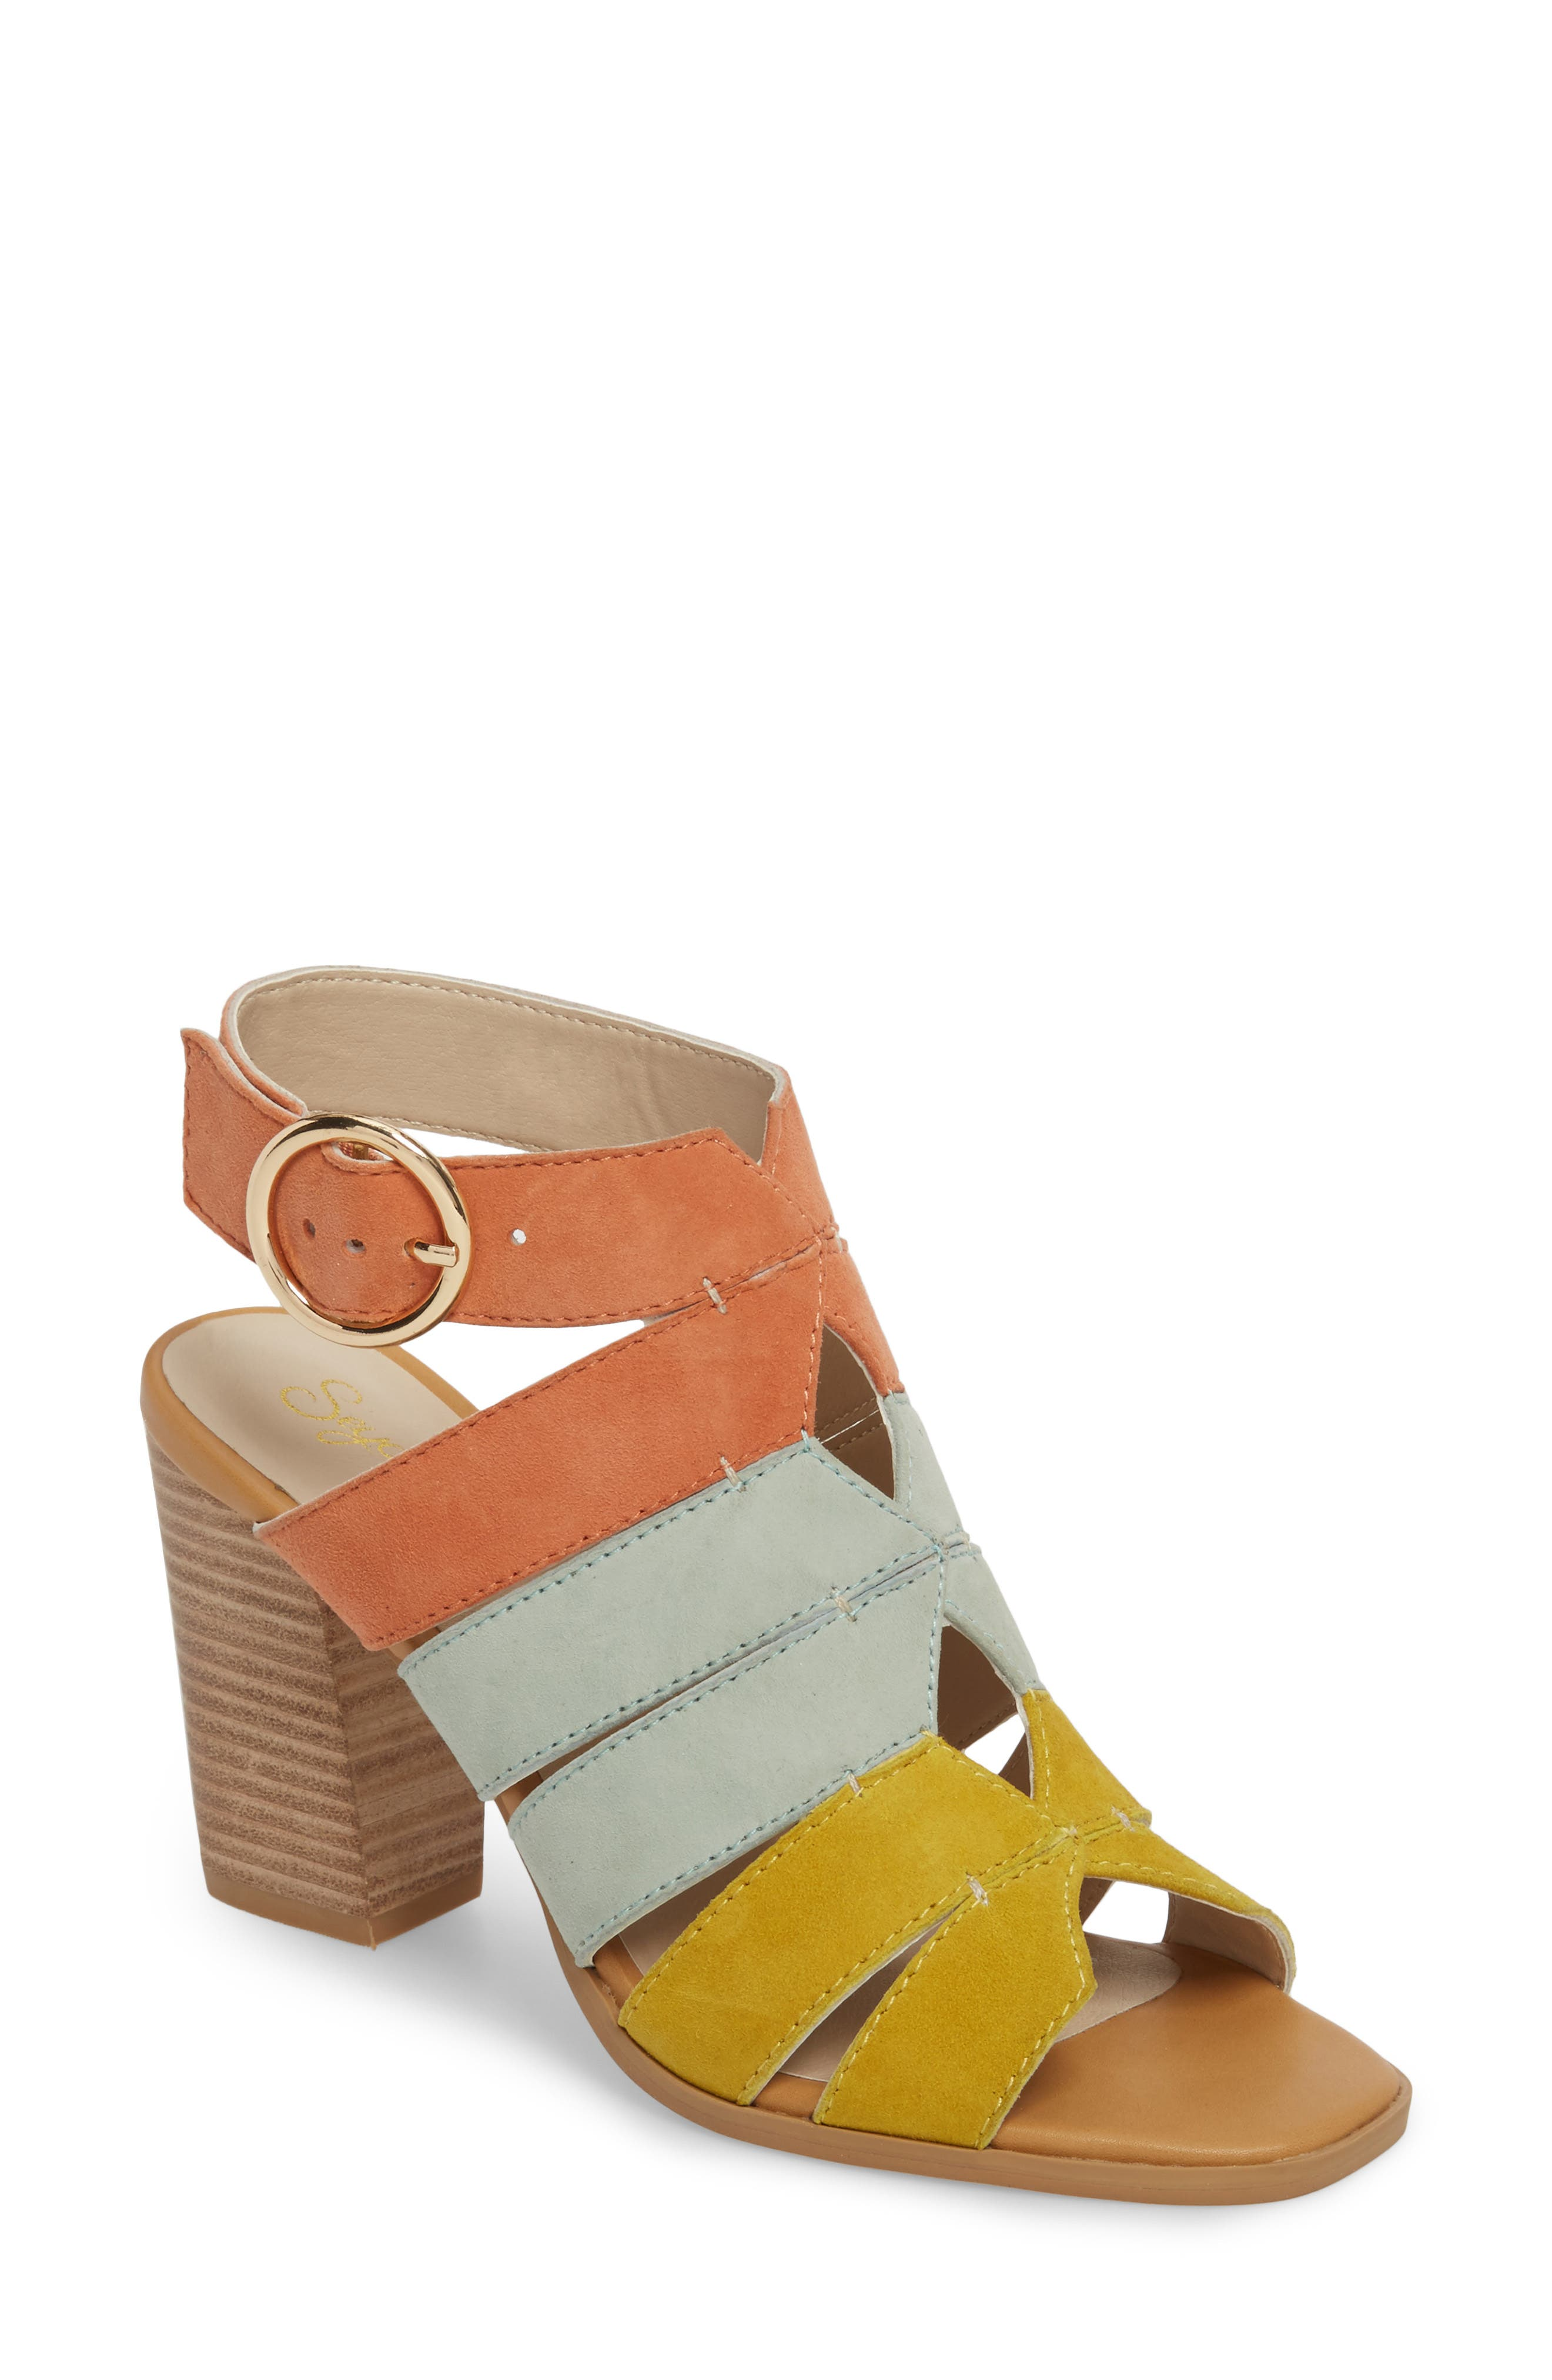 Completely Engaged Sandal,                             Main thumbnail 1, color,                             PASTEL MULTI SUEDE